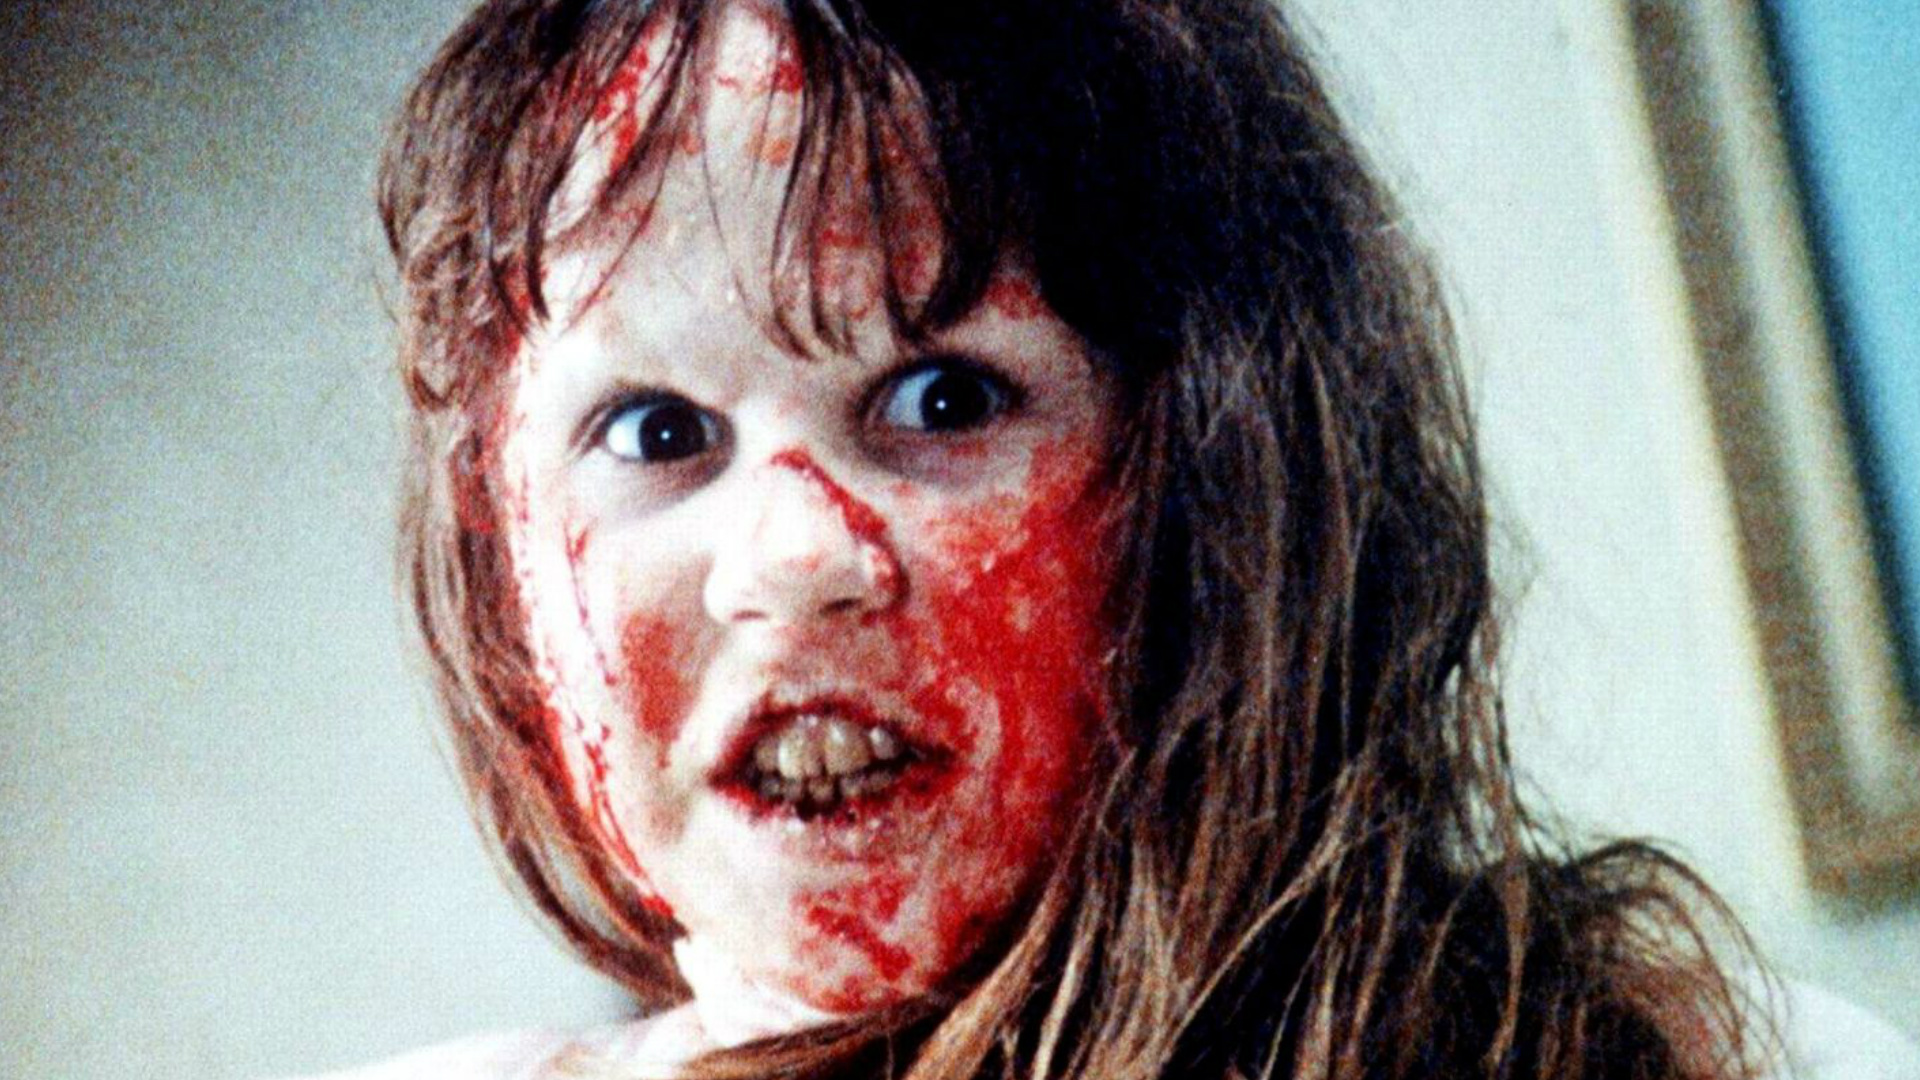 The Exorcist curse victim Linda Blair